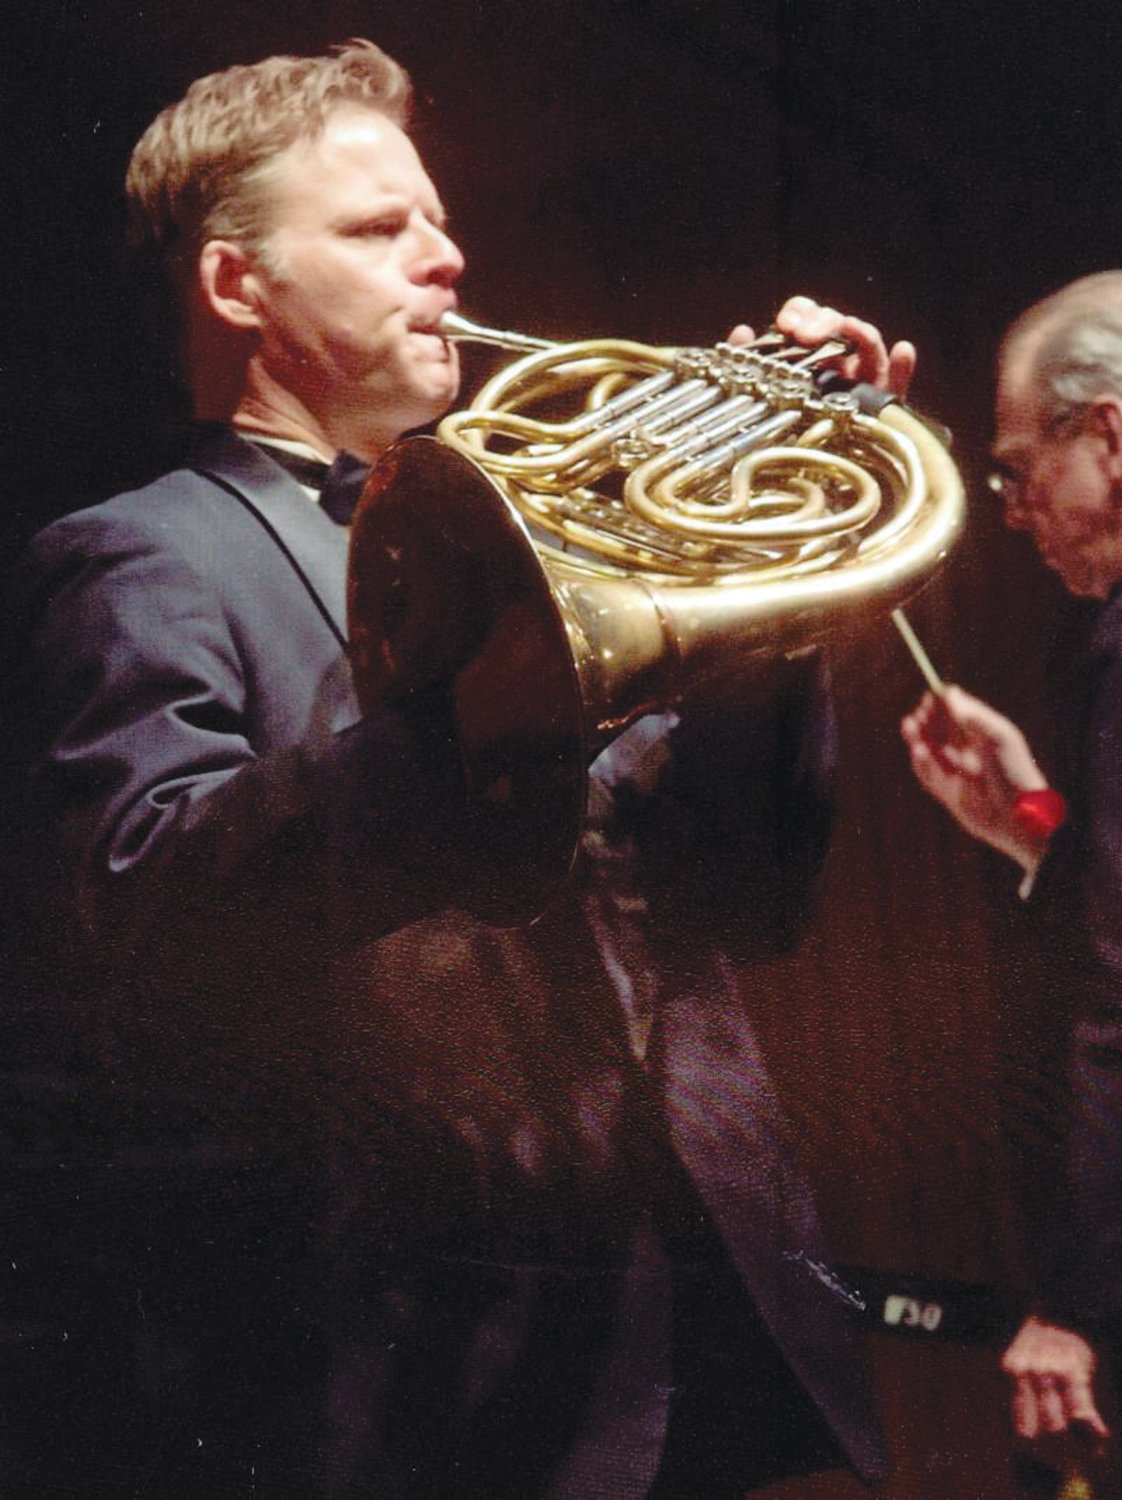 SWEET MUSIC: Kevin Owen, pictured performing on French horn, will be among the musicians taking part in the 45th Music on the Hill chamber music series starting June 2.